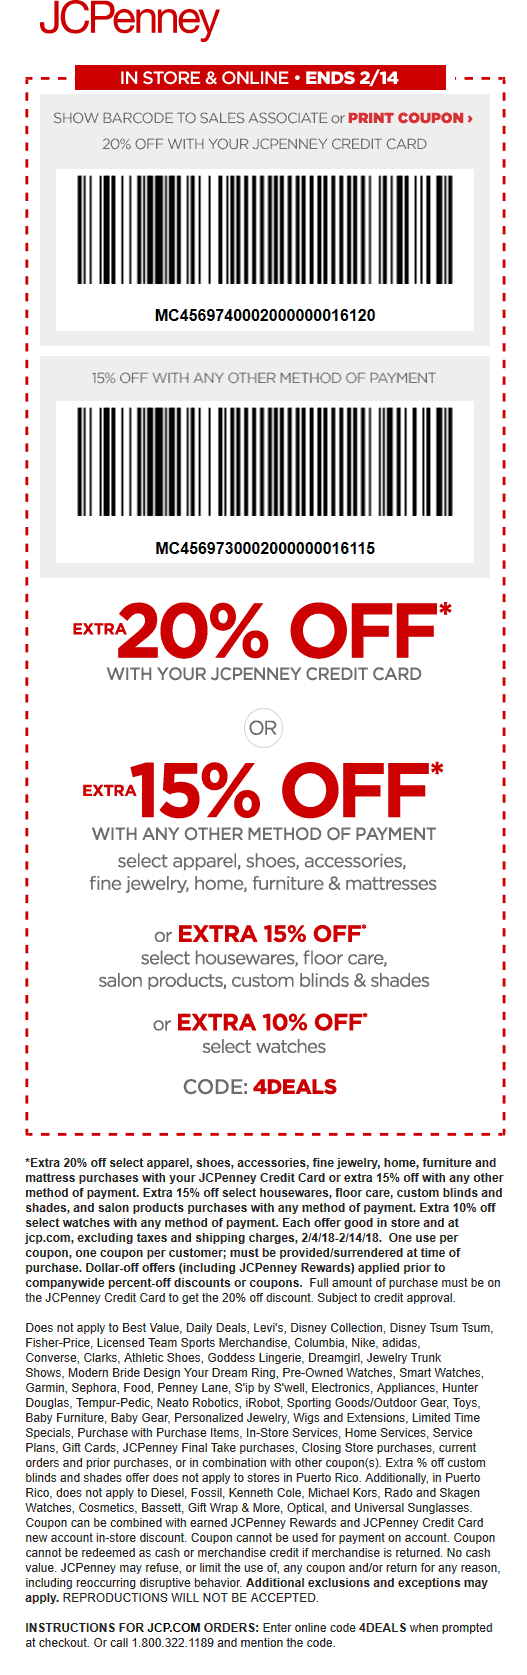 JCPenney.com Promo Coupon 15% off at JCPenney, or online via promo code 4DEALS